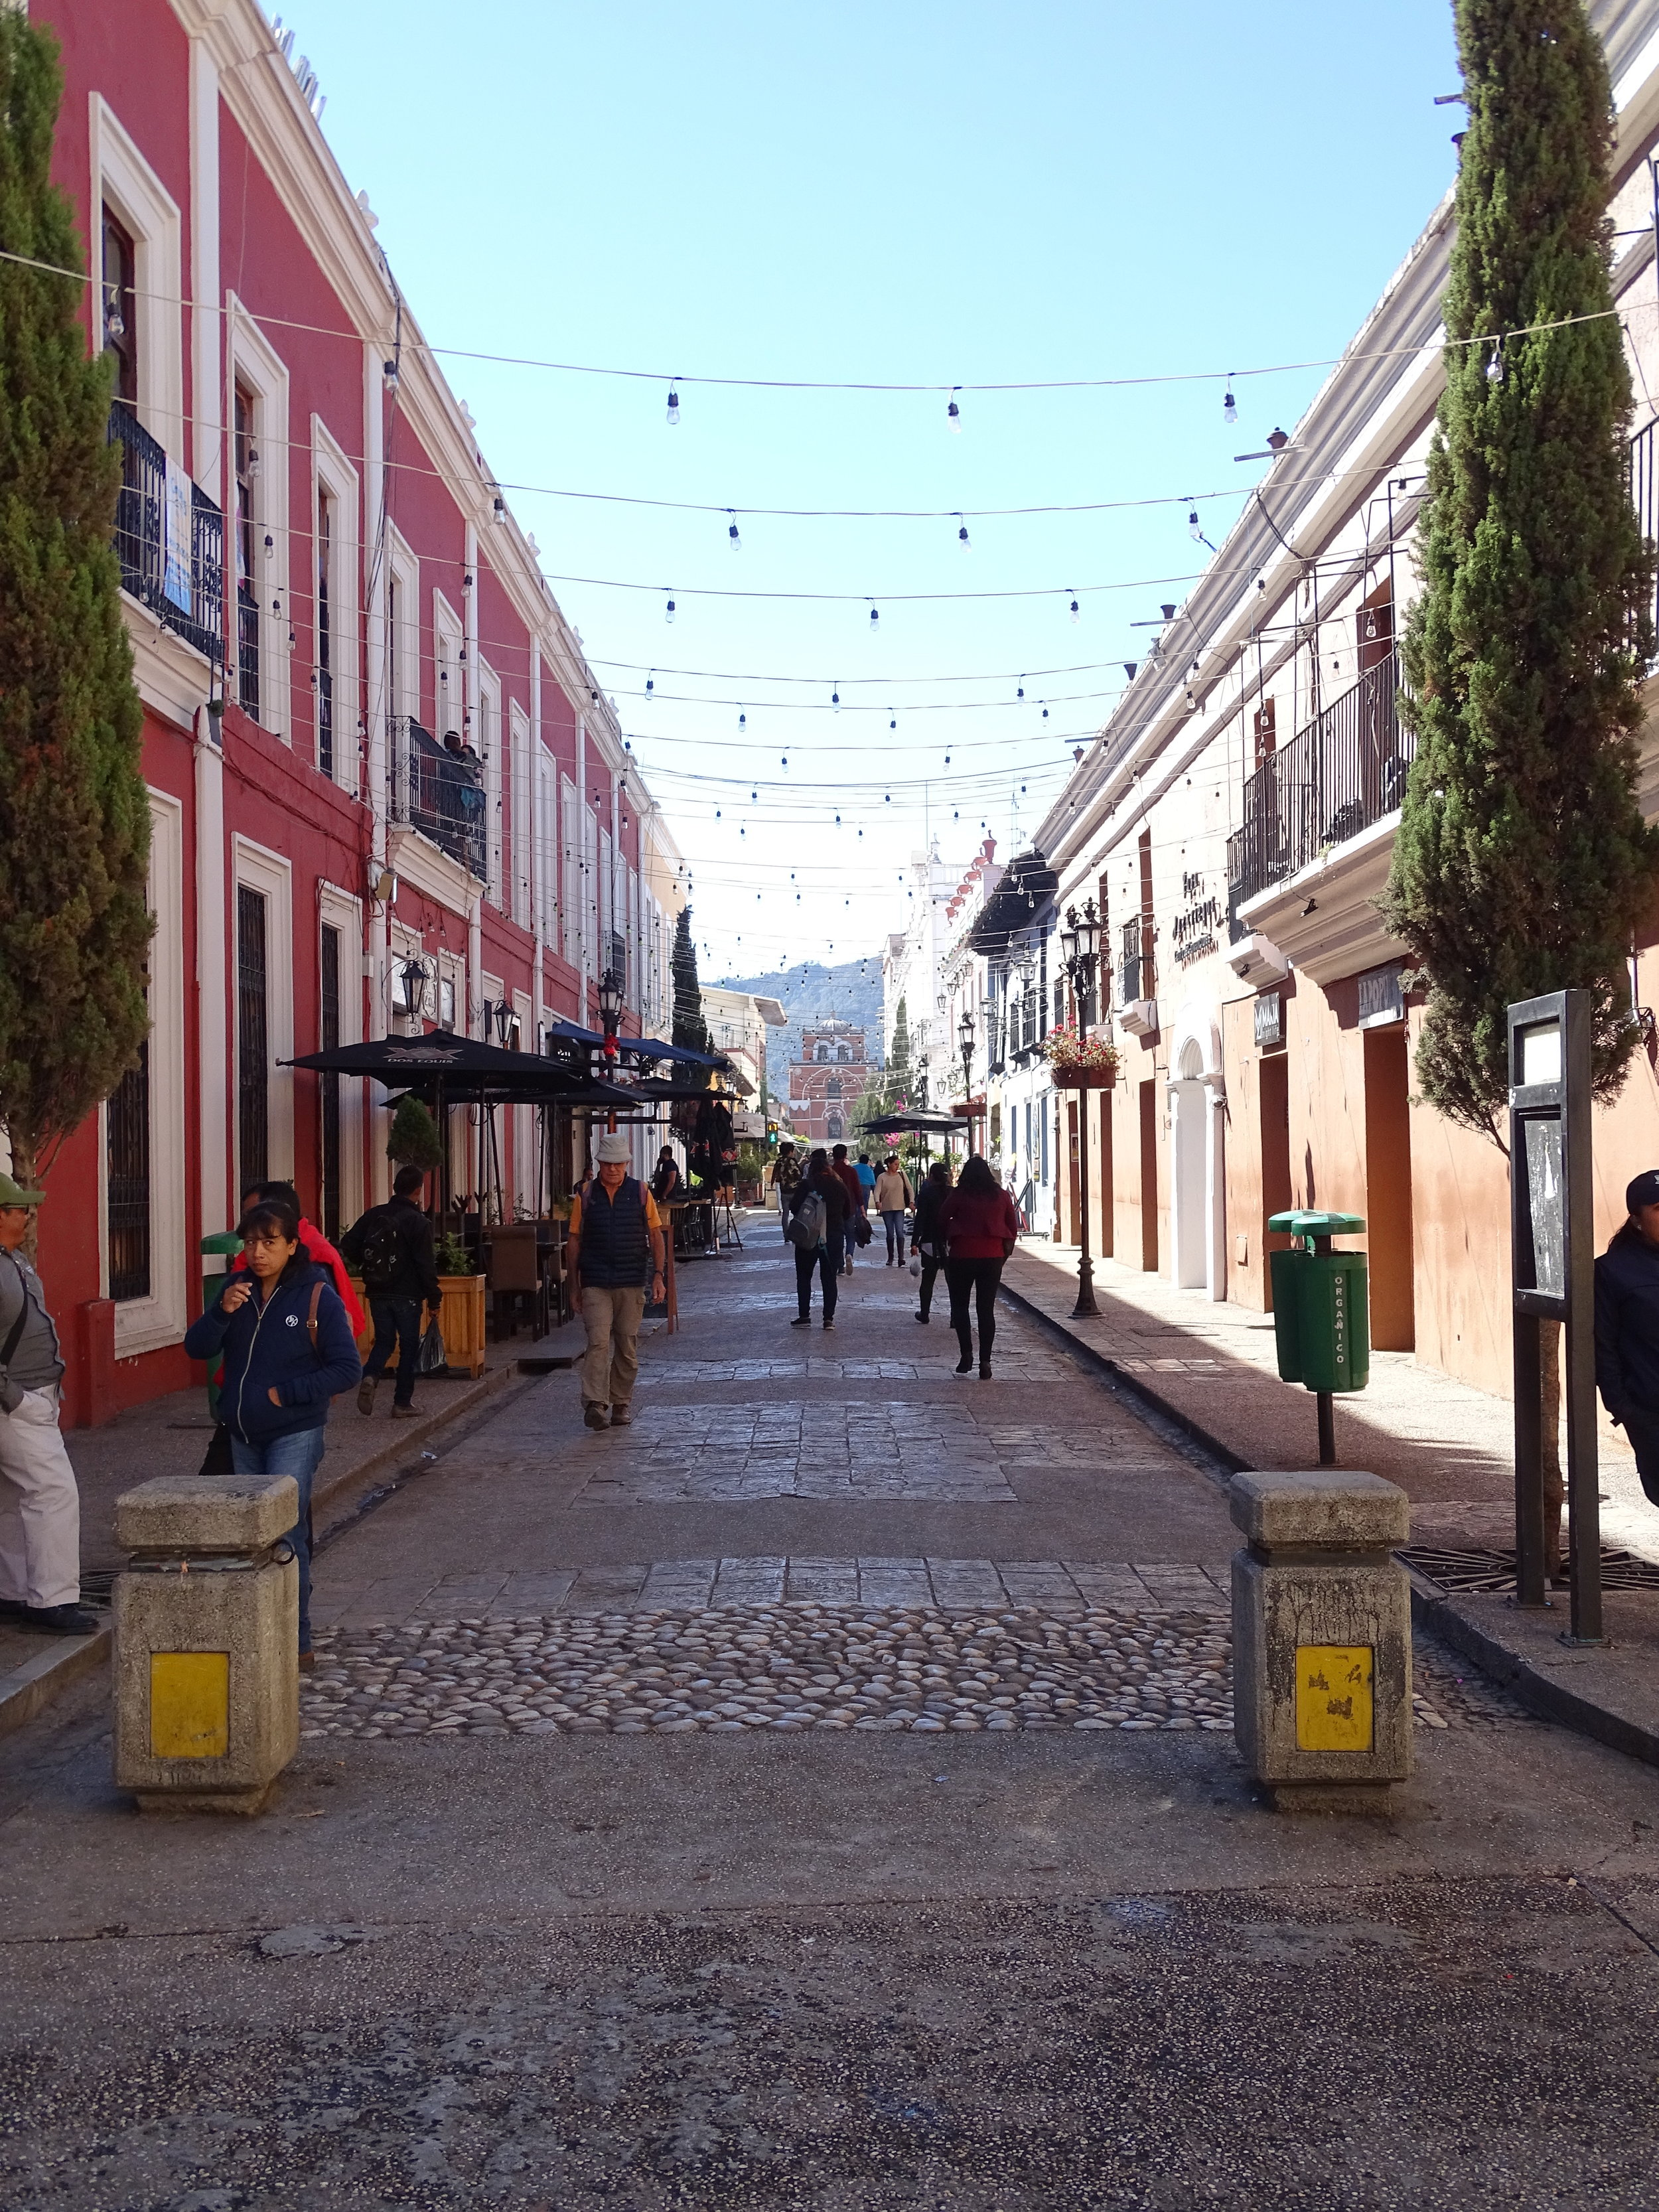 One of the pedestrian streets in San Cristobal